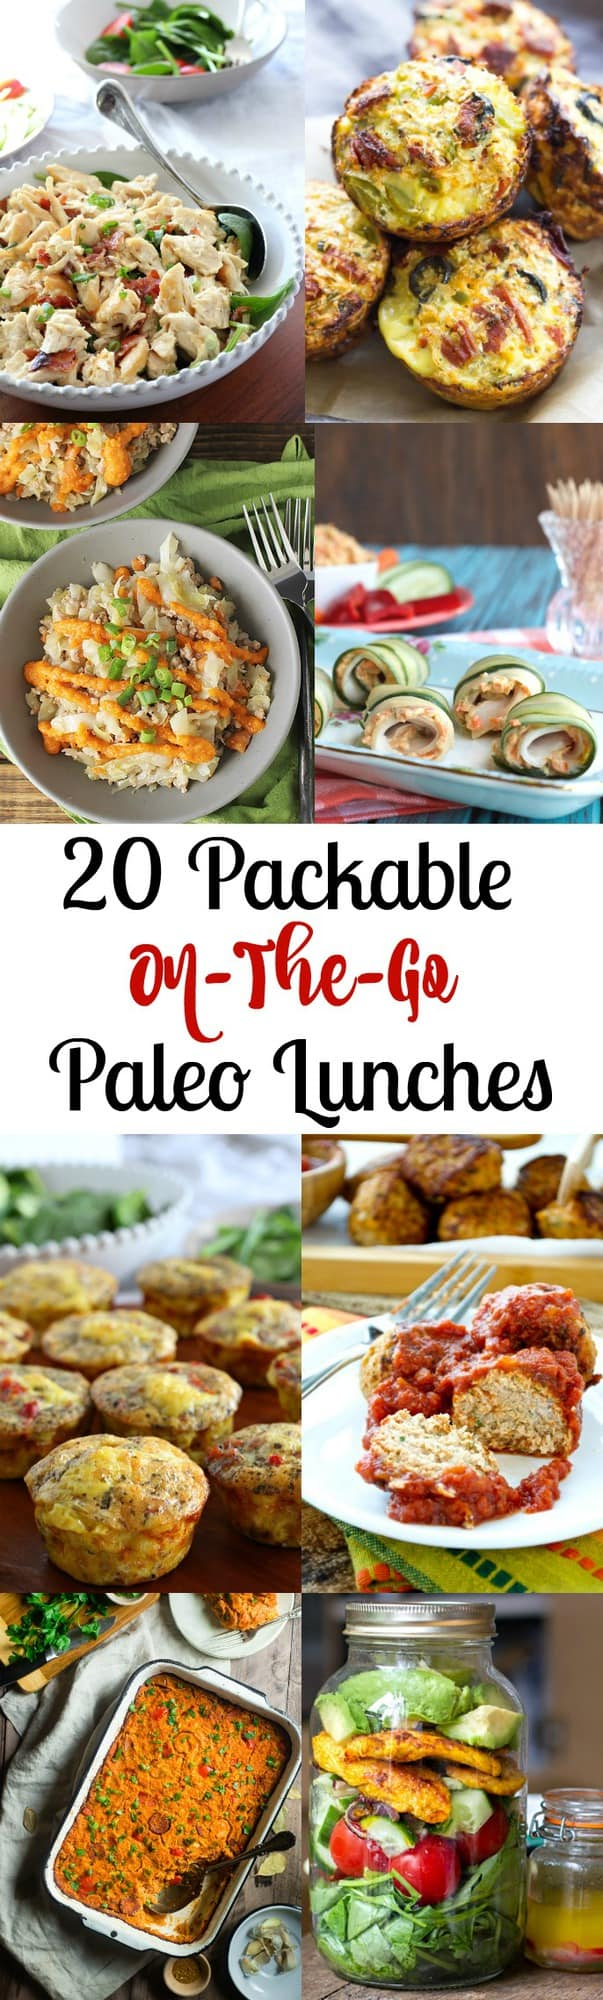 20 packable on-the-go Paleo Lunches